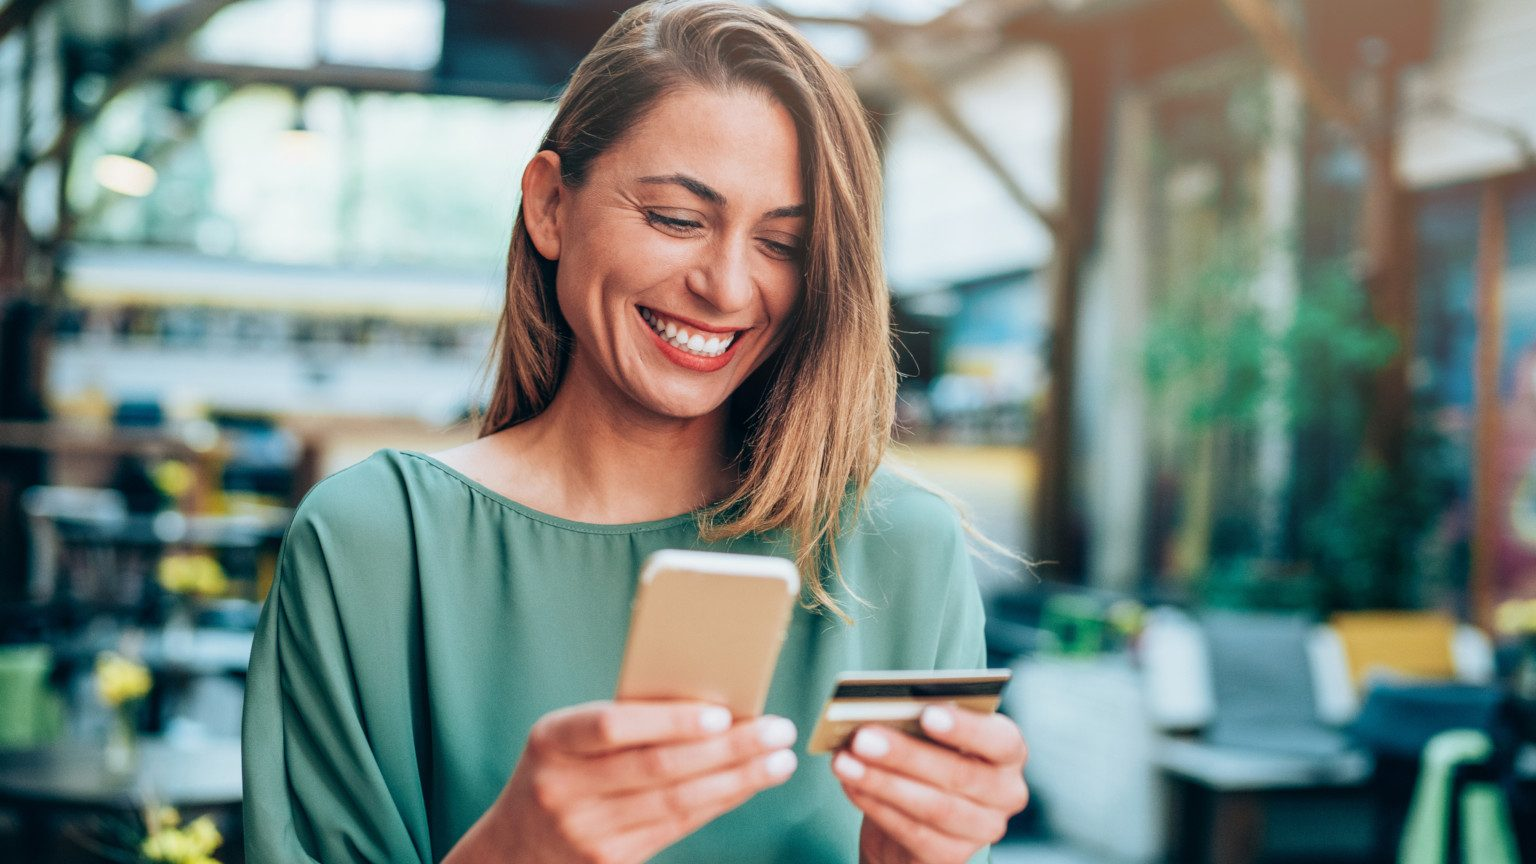 Smiling woman holding her smartphone and a credit card